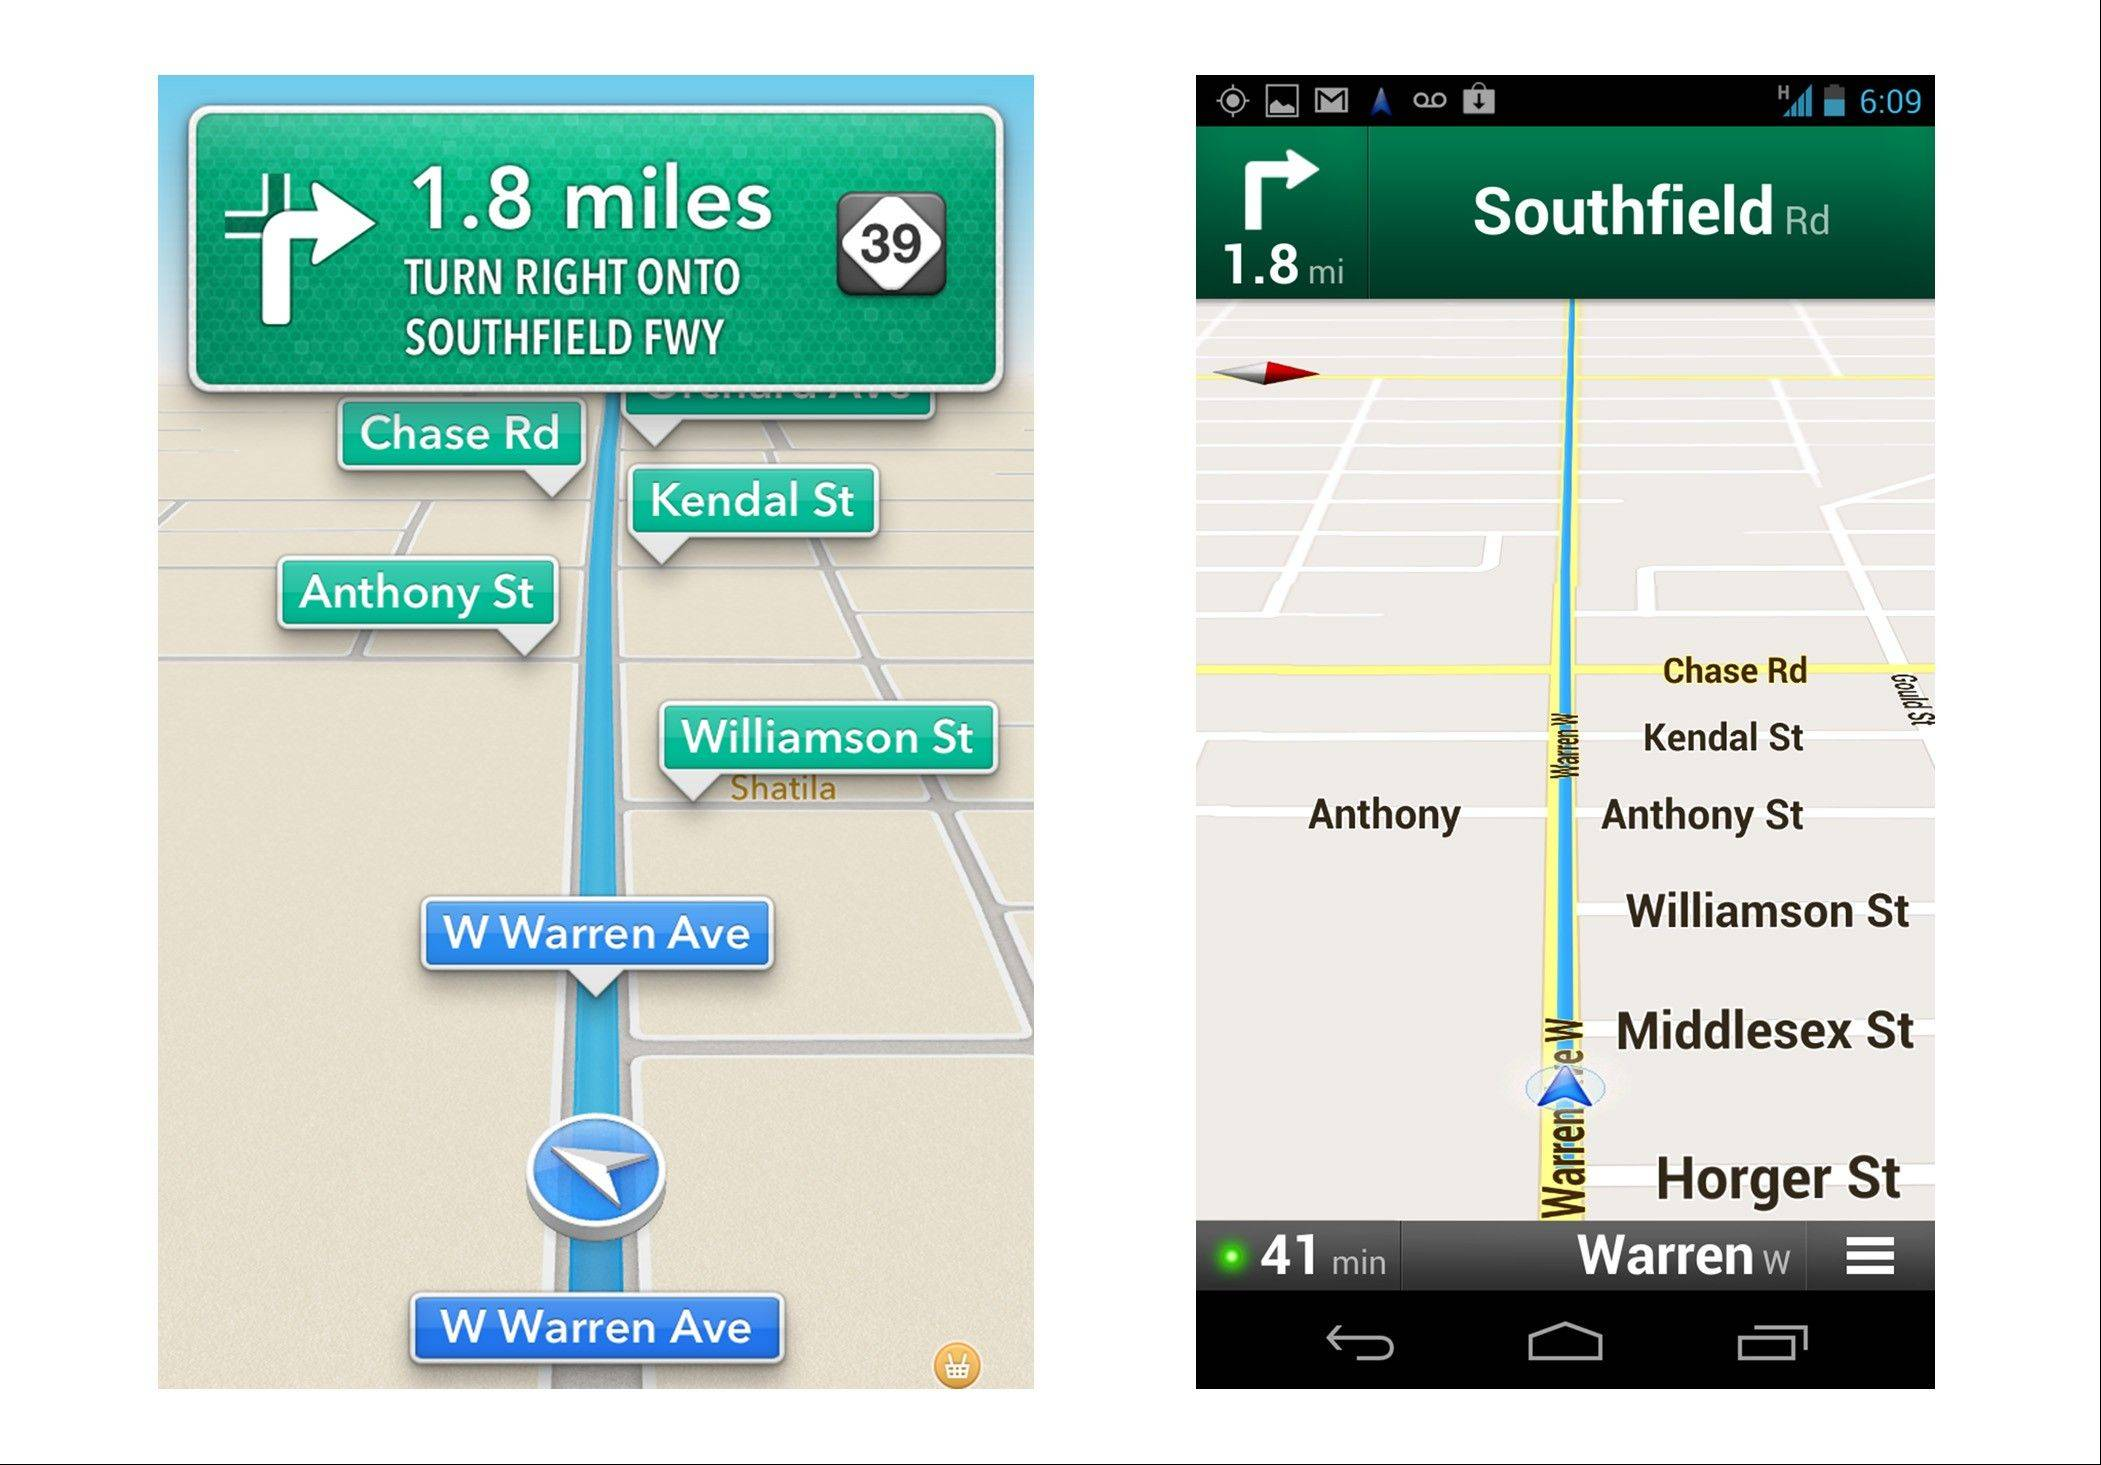 These screenshots show Apple�s maps app on an iPhone, left, and Google�s on an Android device during a drive in Dearborn, Mich. Both have voices guiding motorists to upcoming turns, in this case onto Southfield Road in about two miles. An AP review finds the Google app, on the right, having more features, though Apple�s app does a good job for the most part getting people to their destination.